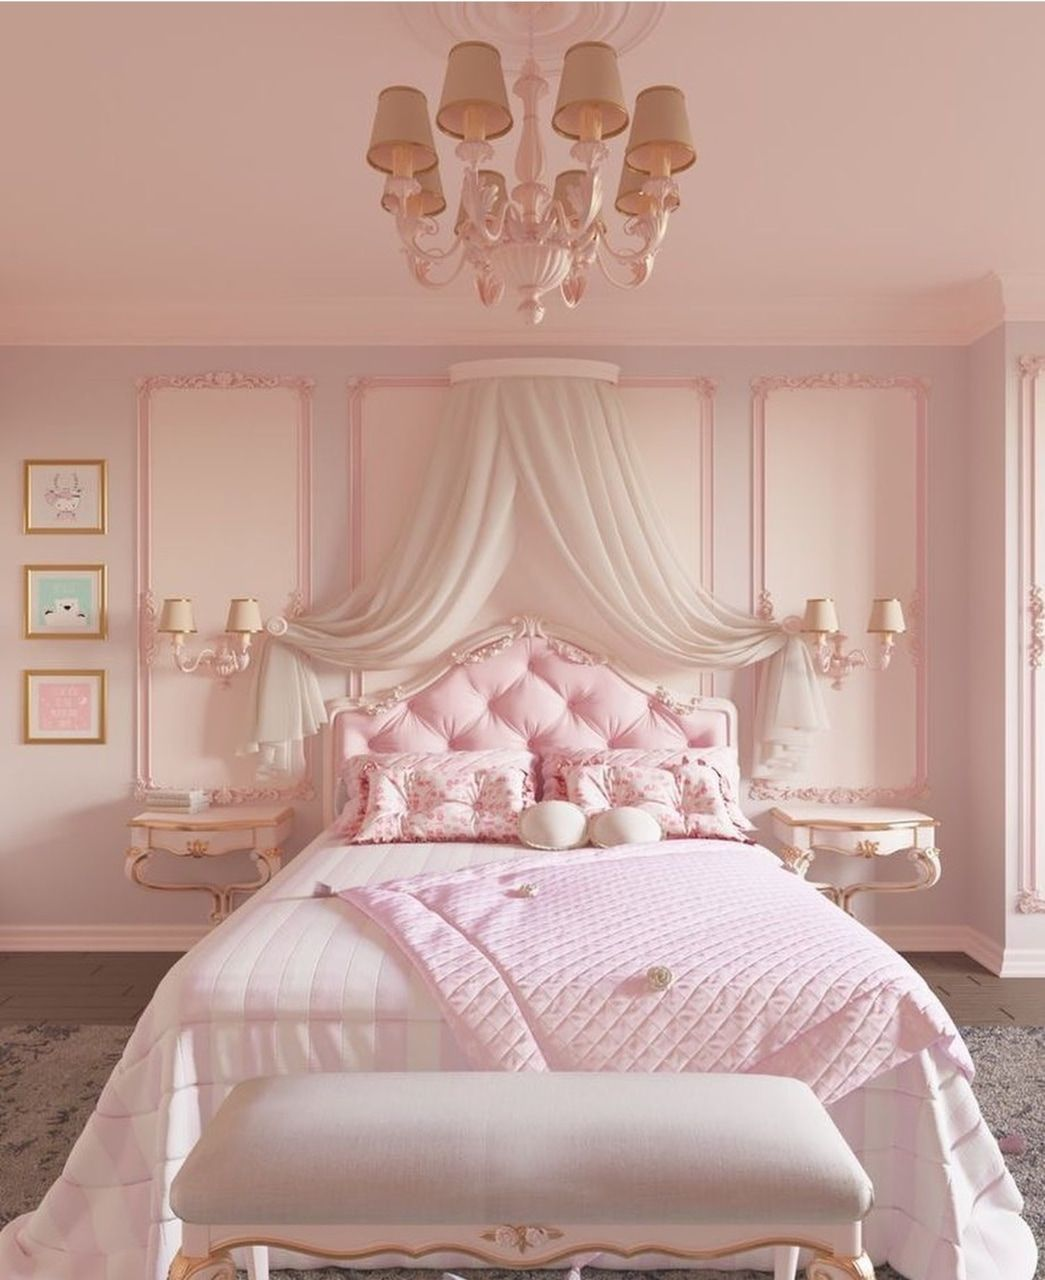 Image Shared By Pink Rose Find Images And Videos About Pink Vintage And Girly On We Heart It The Ap Pink Bedroom Design Pink Bedroom Decor Bedroom Interior